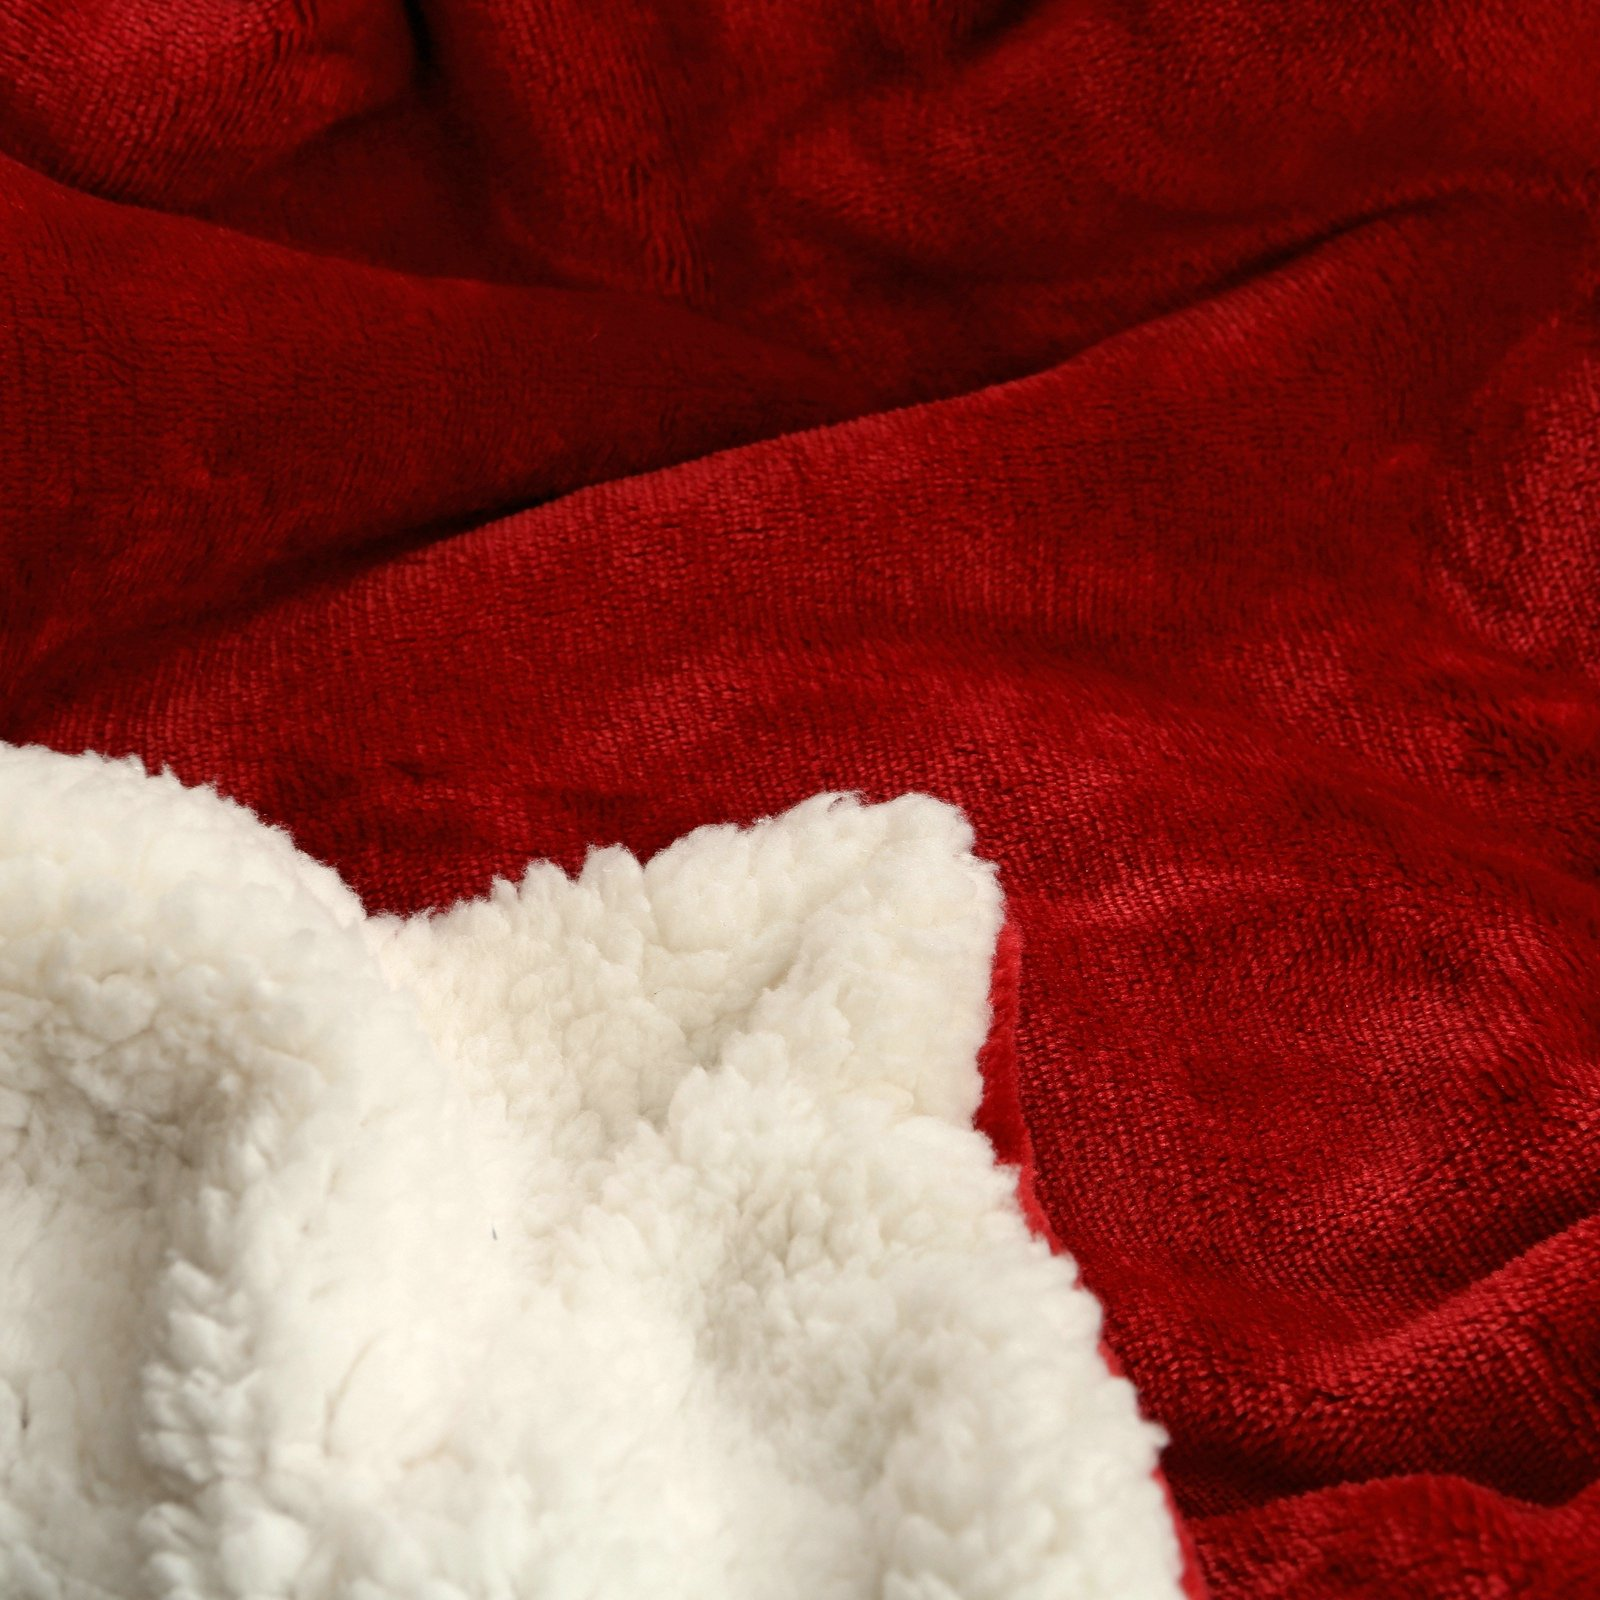 Sherpa Throw Blanket Luxury Burgundy Red Twin Size 60x80 Inches Reversible All Season Super Soft Warm Fleece Thick Fuzzy Microplush Blanket for Bed Couch and Gift Blankets